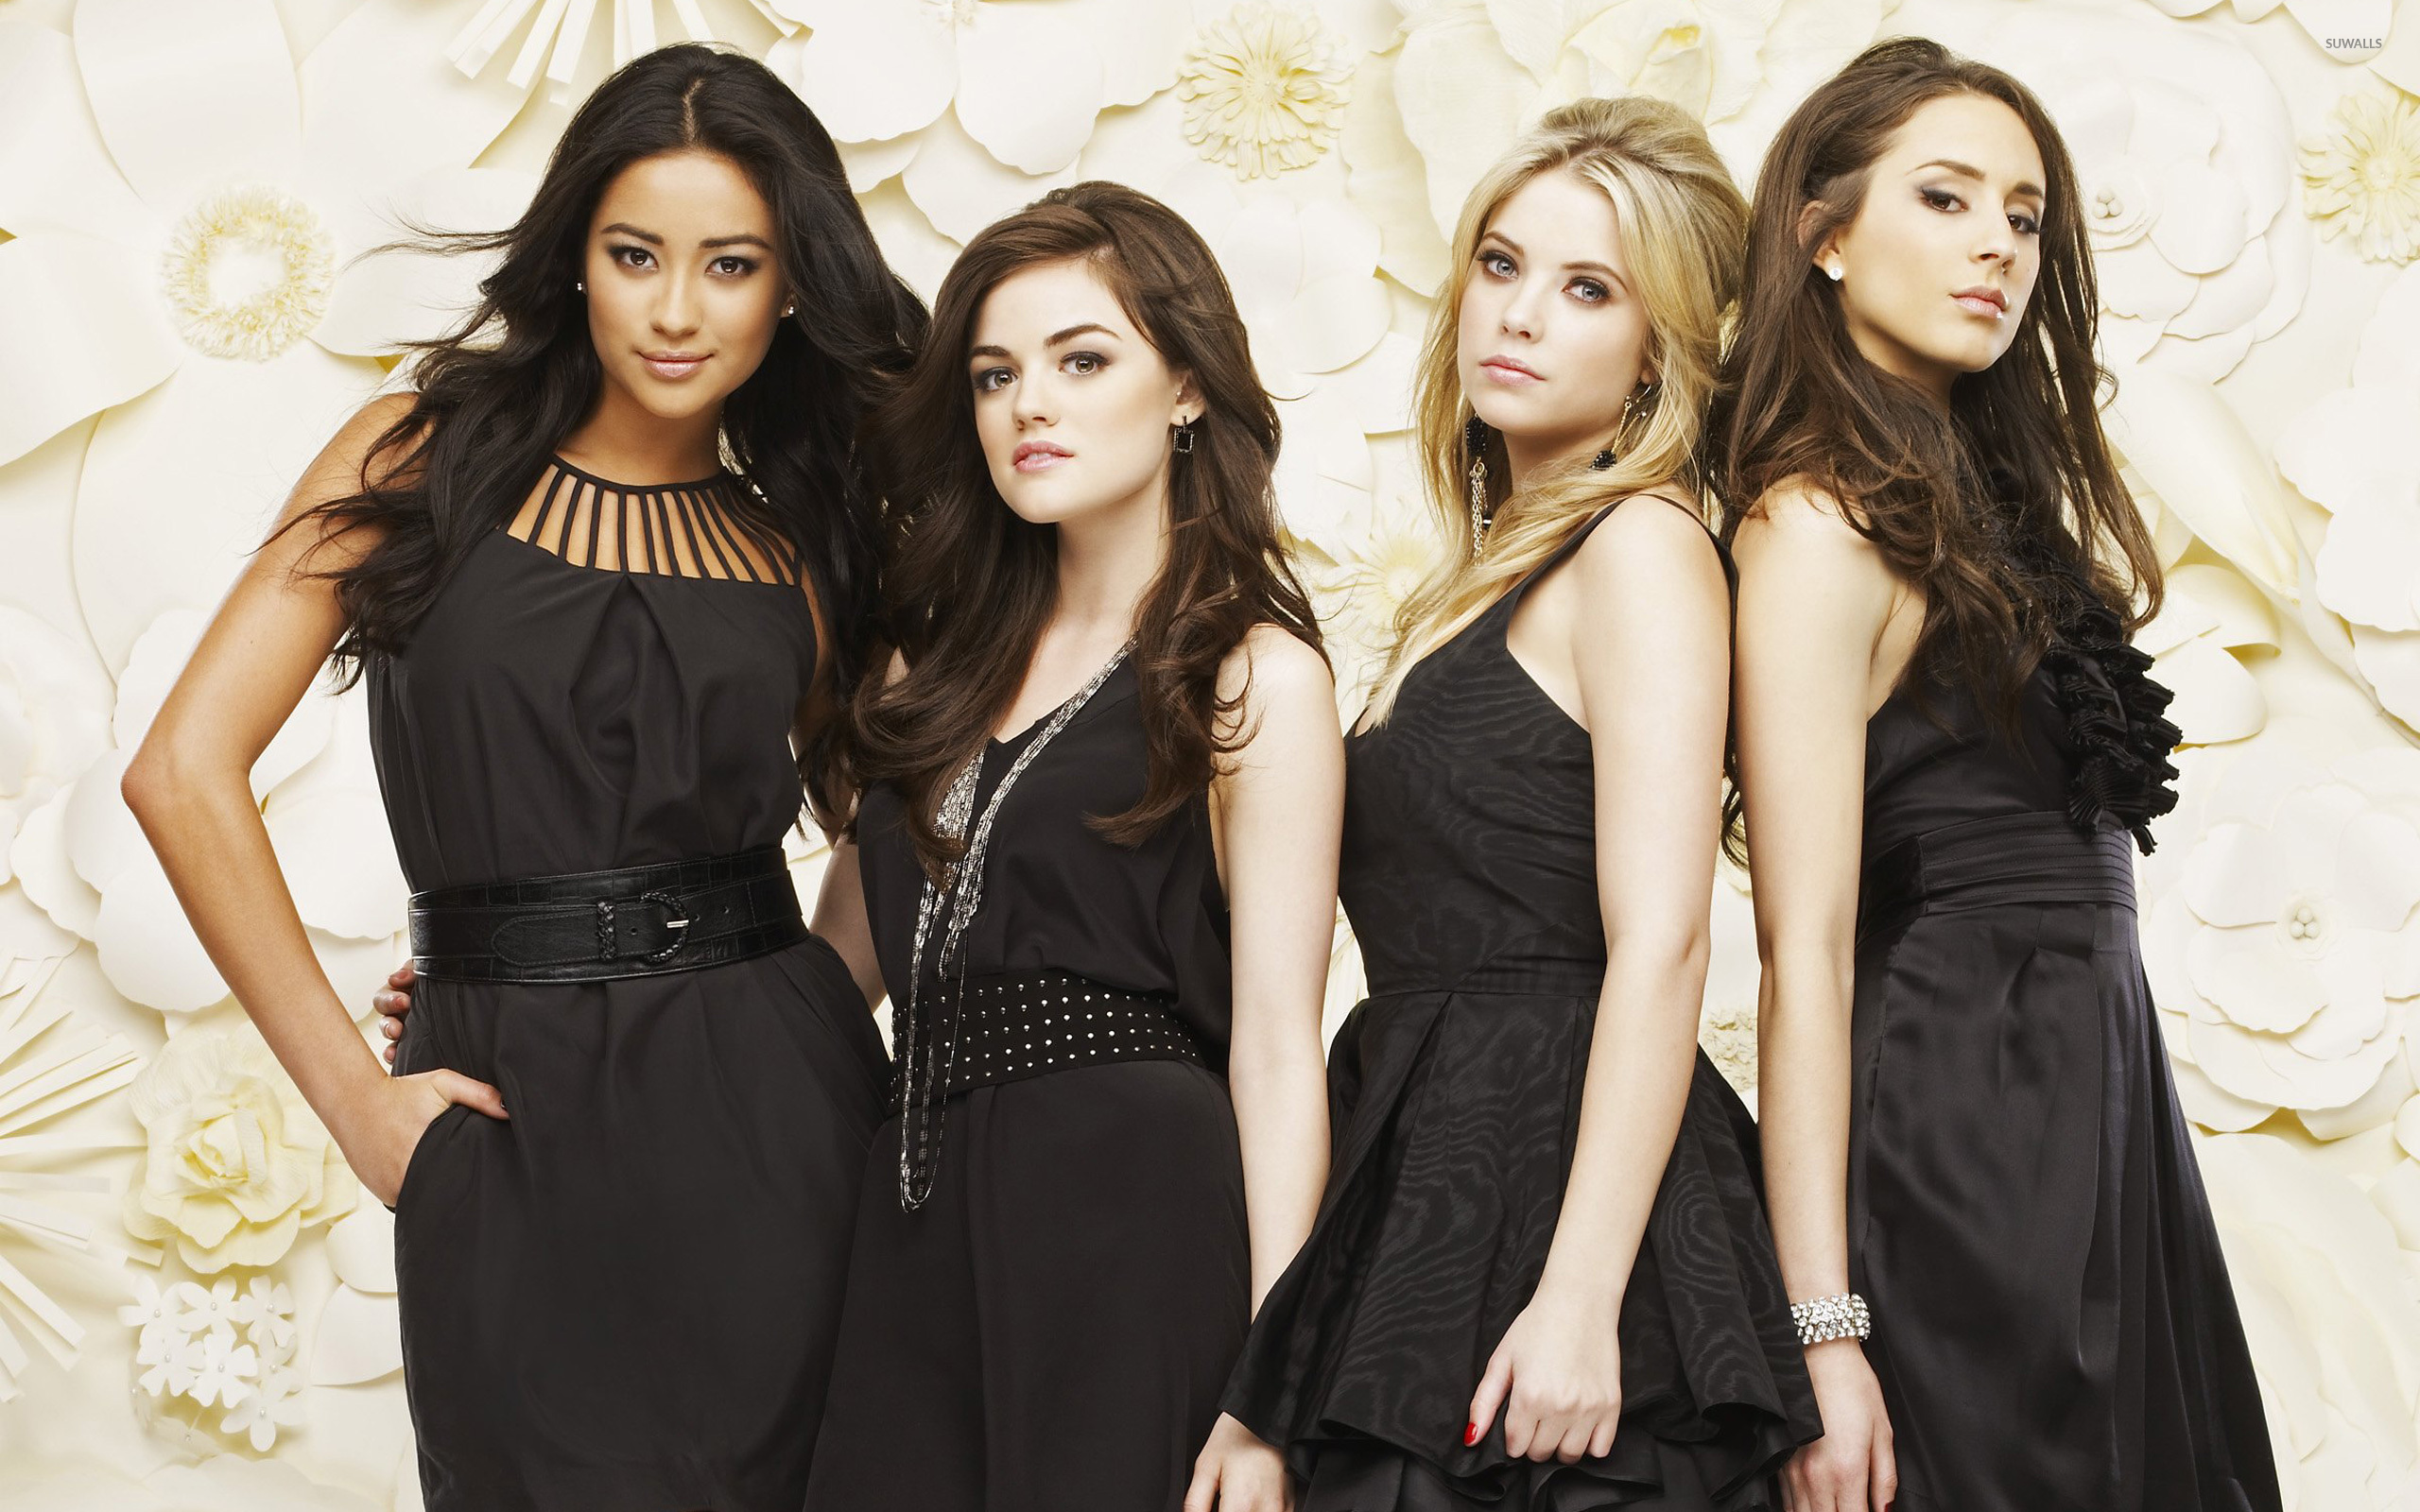 pretty little liars [4] wallpaper - tv show wallpapers - #8553